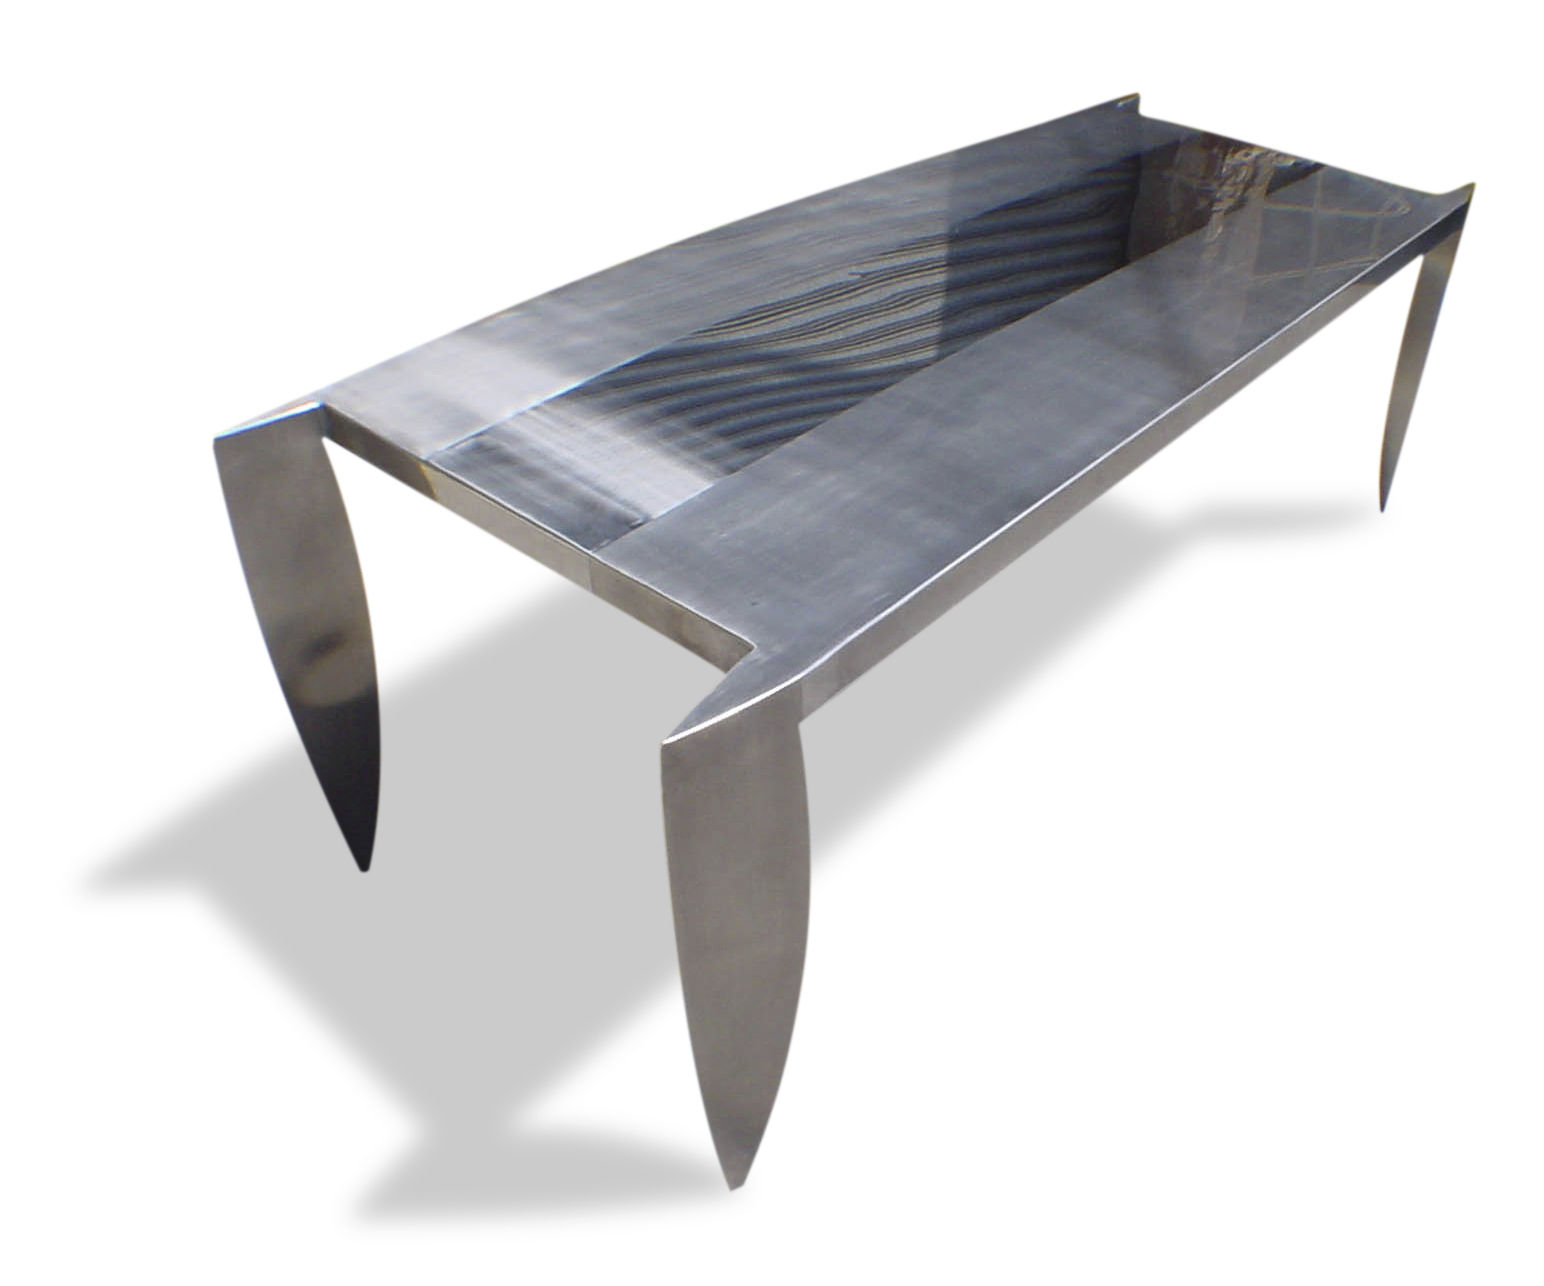 table design. Original Design Table / Stainless Steel Rectangular Square - DAGGER O